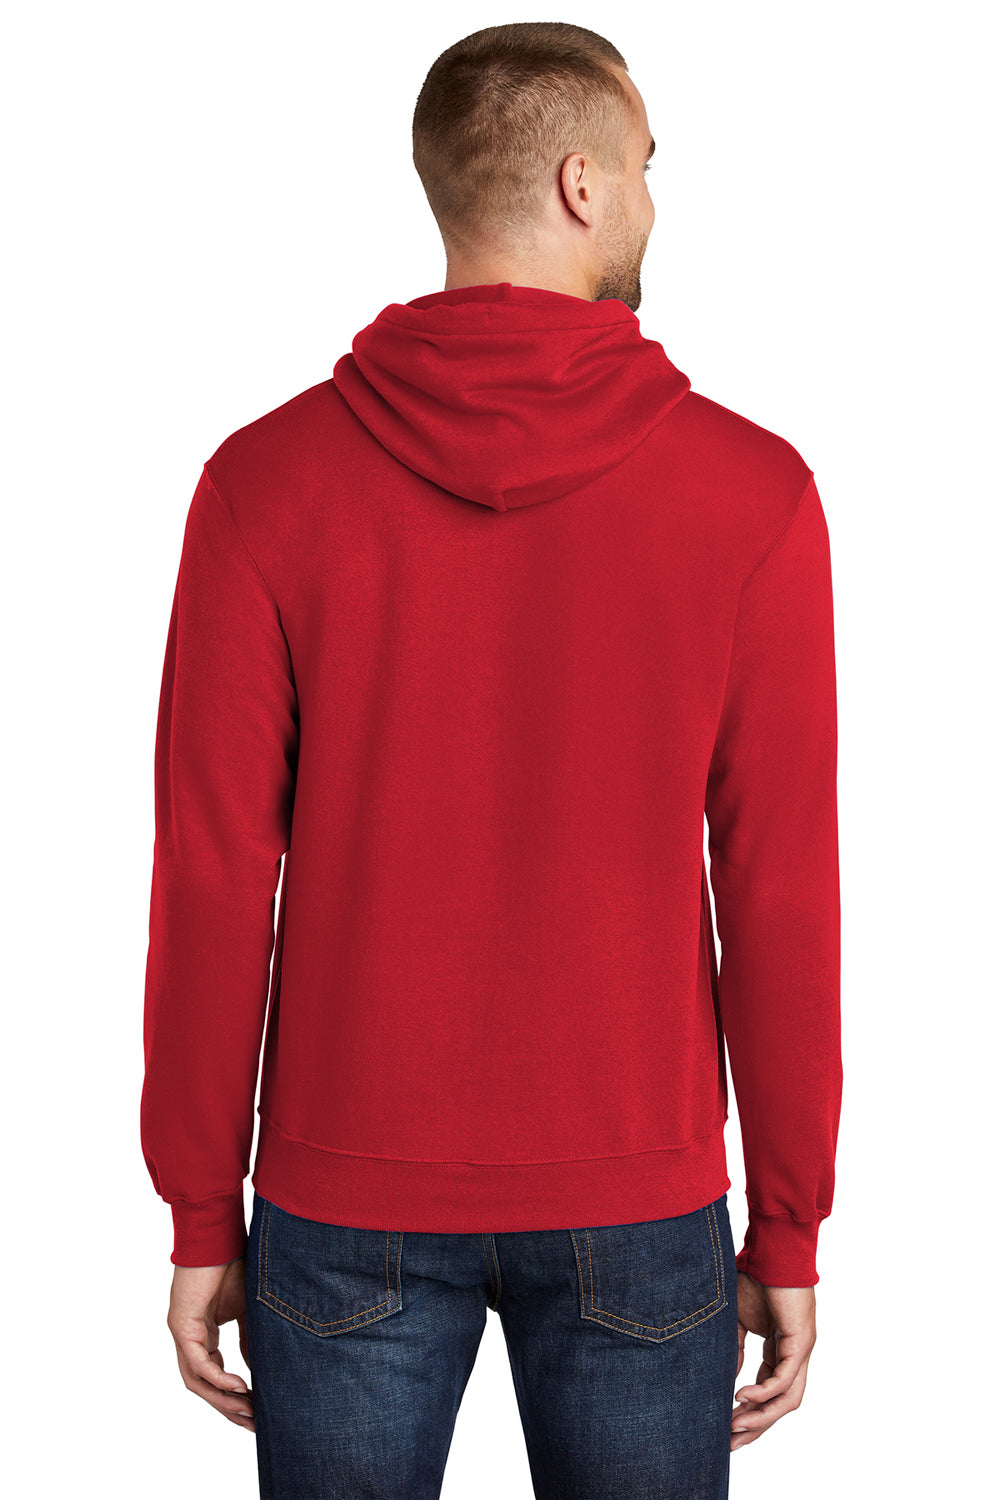 Port & Company PC78H Mens Core Fleece Hooded Sweatshirt Hoodie Red Back